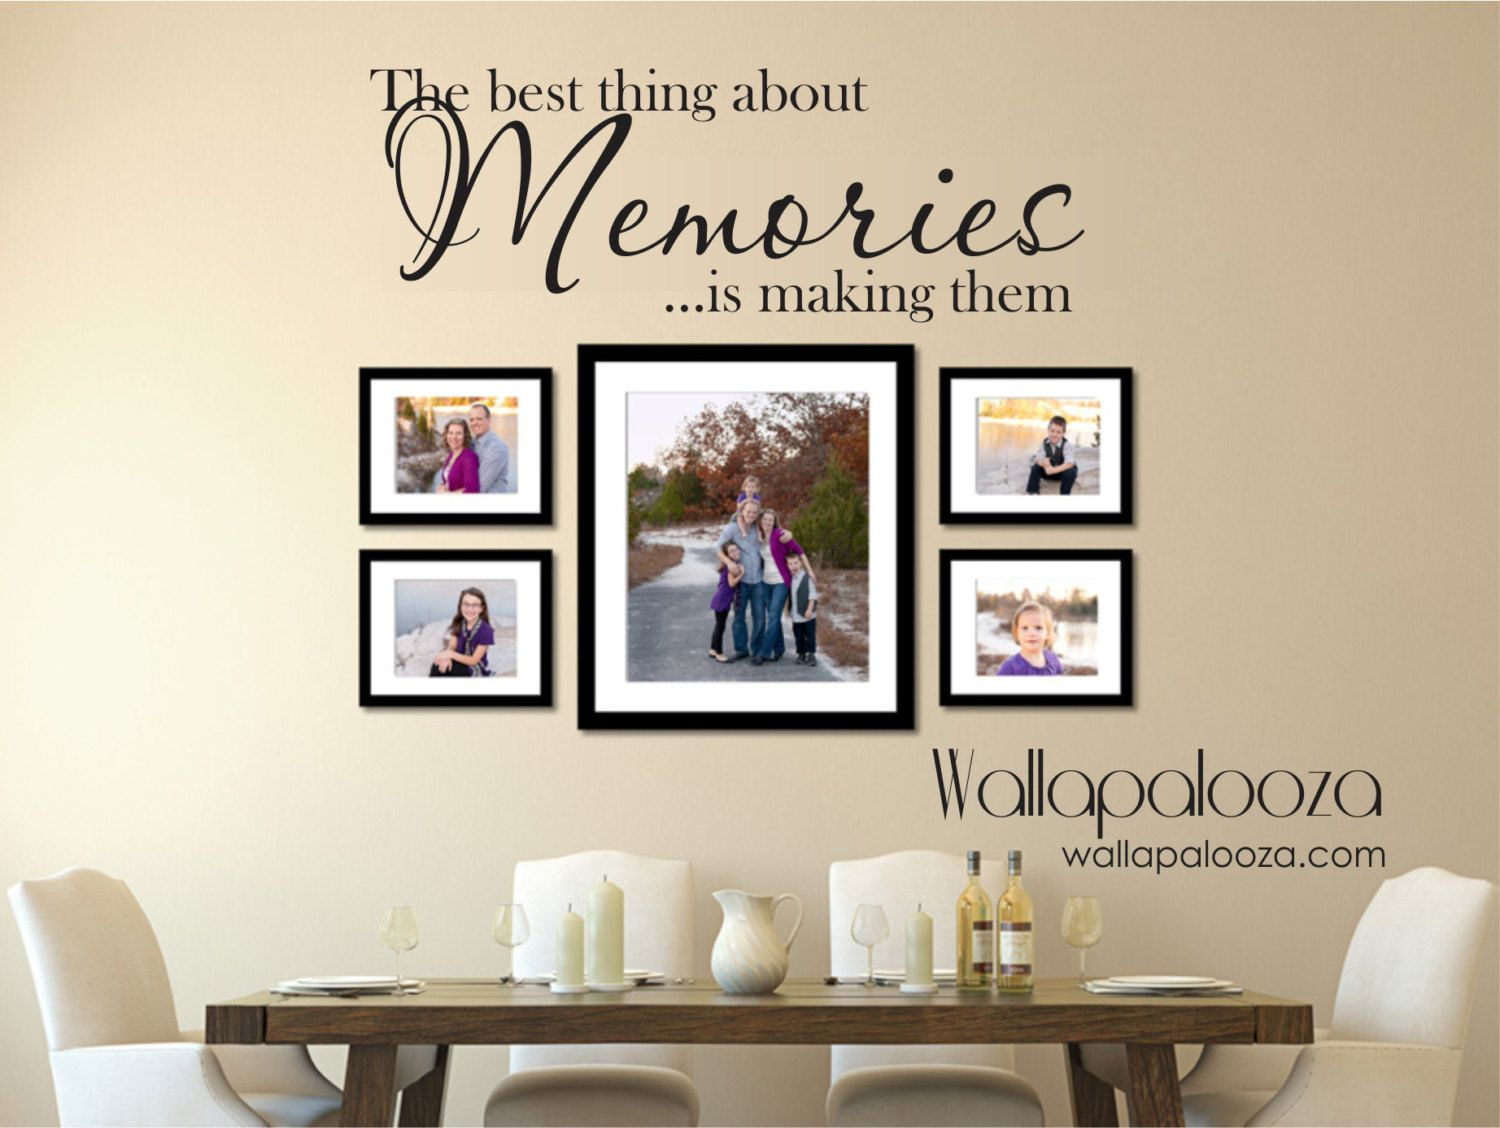 Family wall decal memories wall decal by wallapaloozadecals family wall decal memories wall decal by wallapaloozadecals 2500 amipublicfo Choice Image